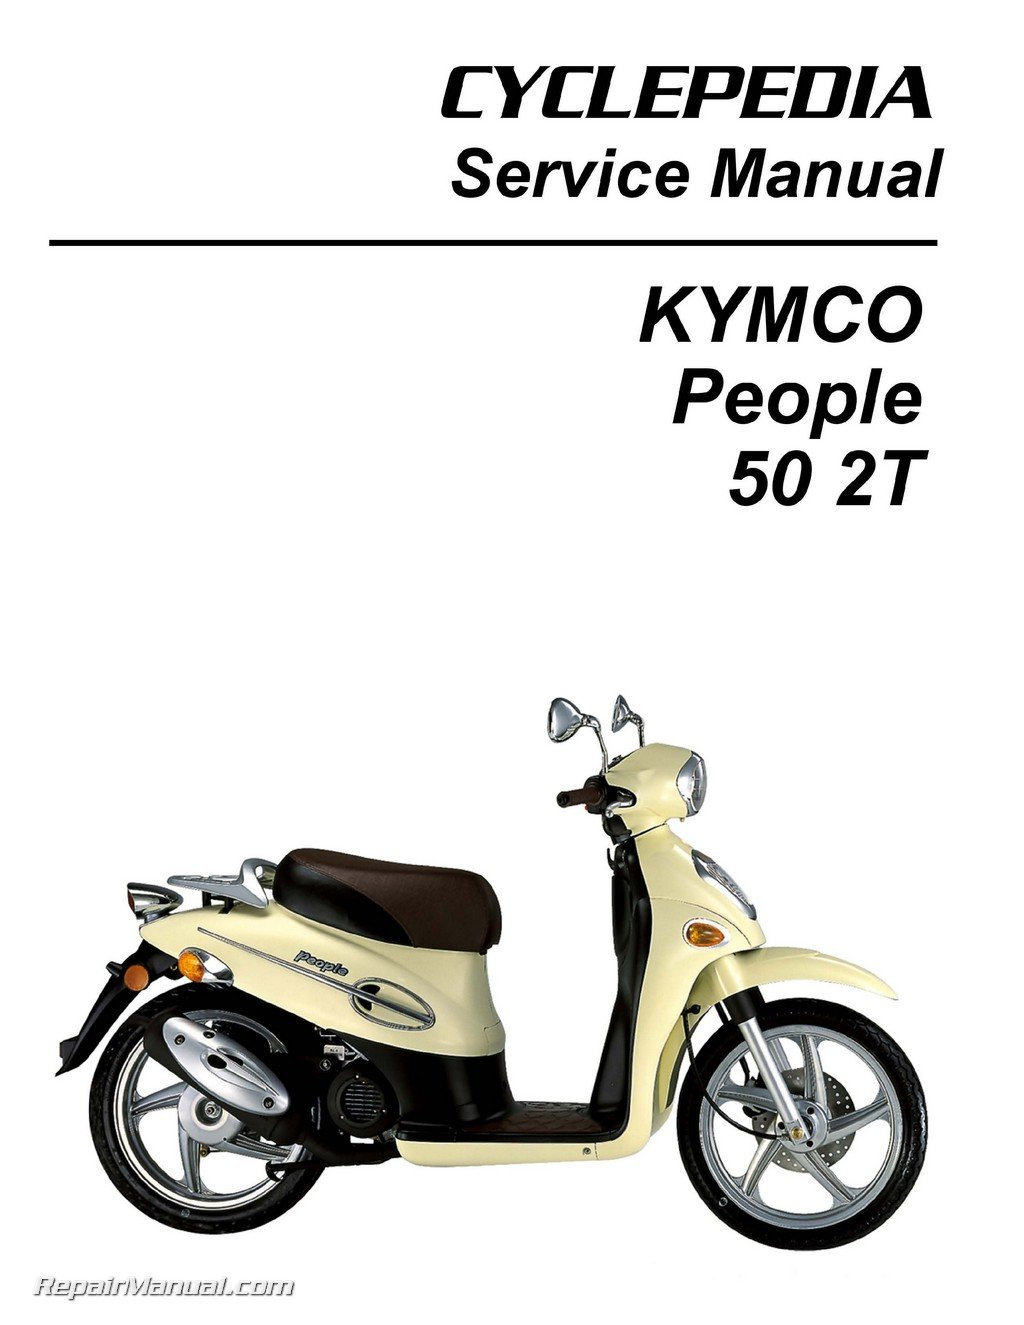 CPP-197-Print KYMCO People 50 Scooter Printed Service Manual: Manufacturer:  Amazon.com: Books